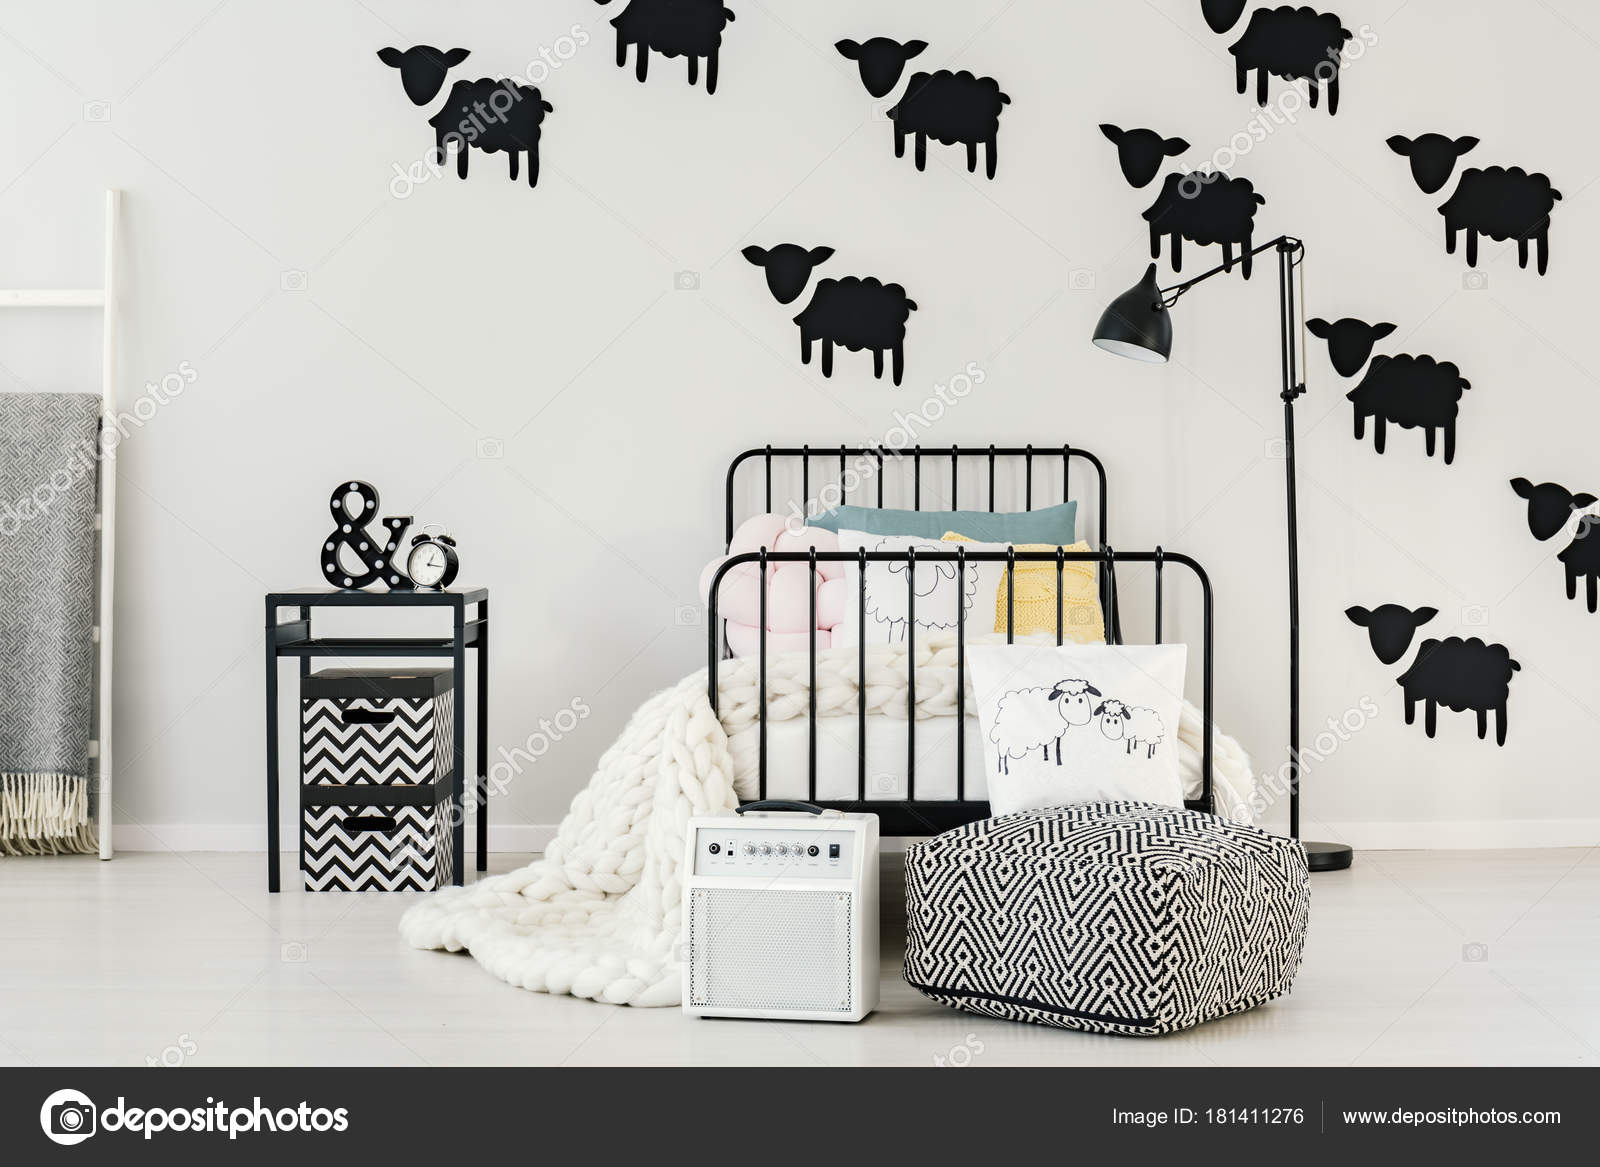 Schapen stickers in slaapkamer interieur — Stockfoto © photographee ...